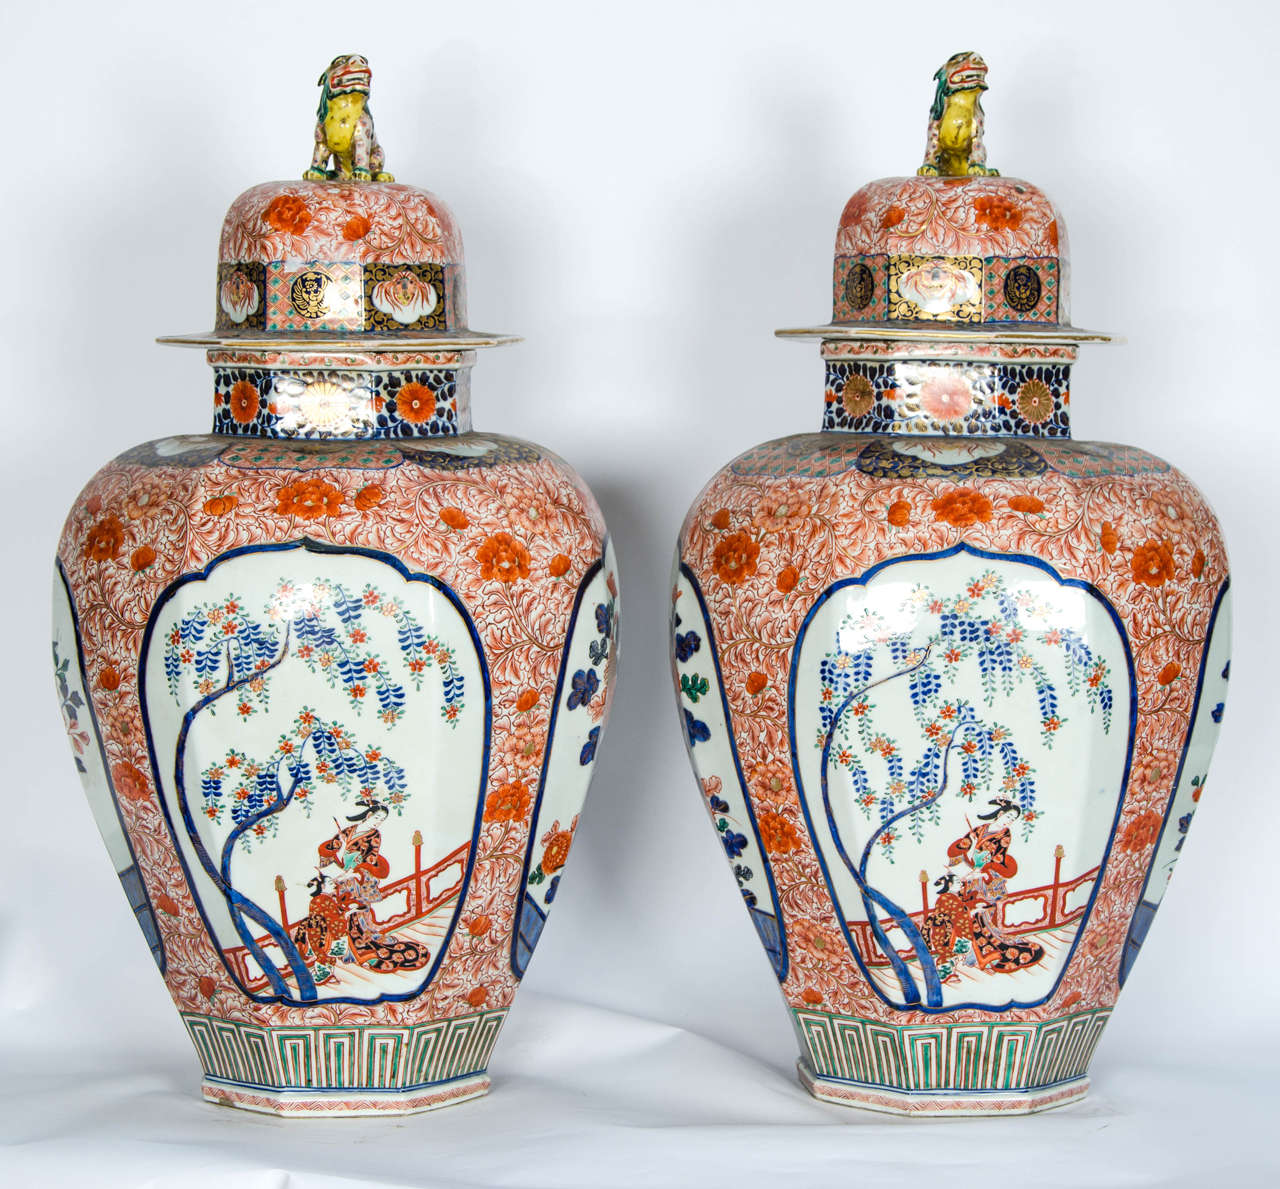 A large and impressive pair of 19th century Japanese Imari lidded vases, having dogs of faux to the lids, hand-painted floral panels and surrounds of wisteria and chrysanthemums.